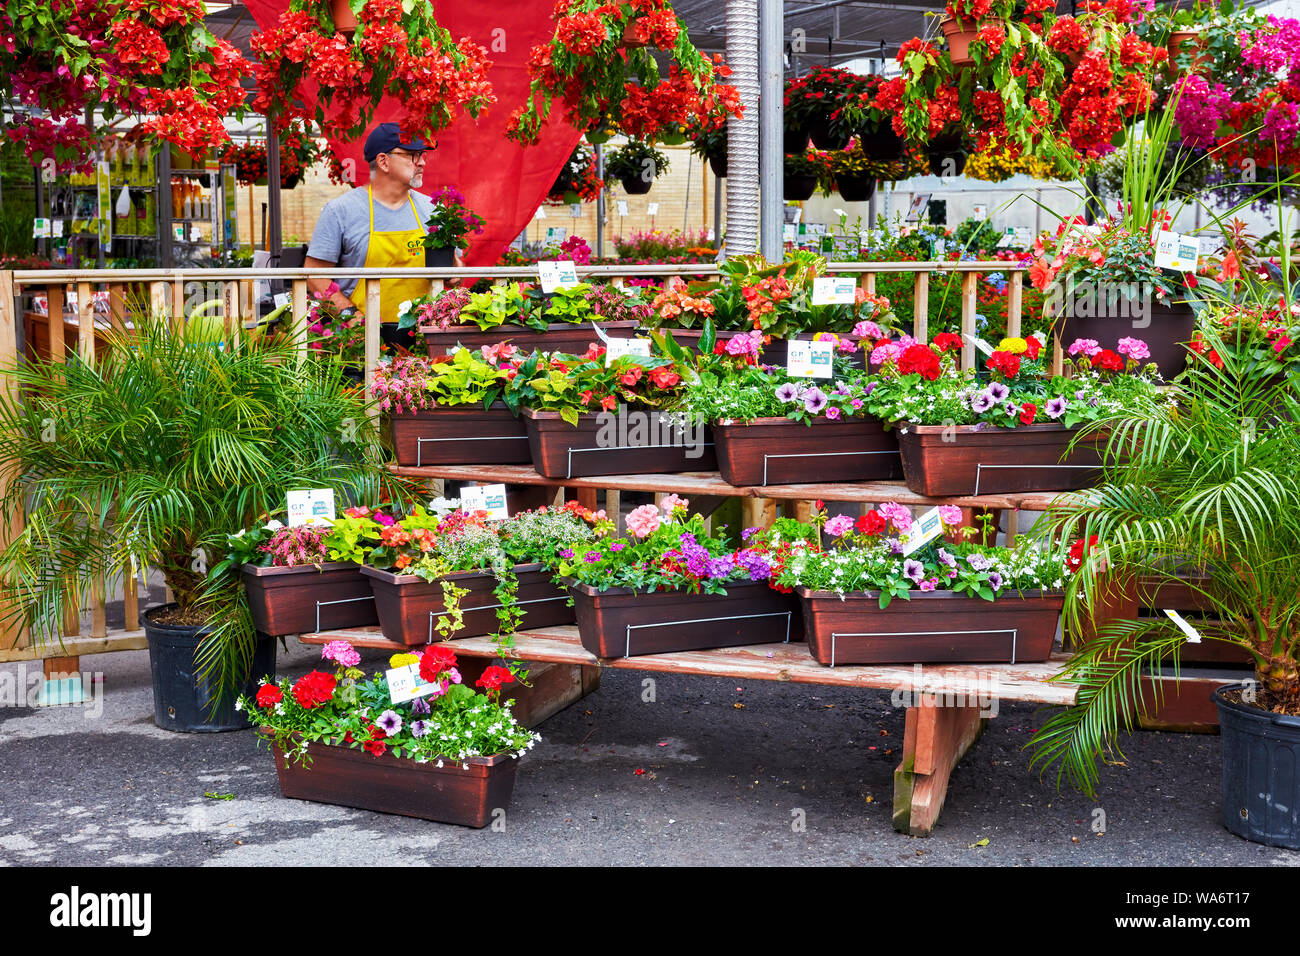 Colorful flowers and a florist salesperson at Atwater flower market in Montreal, Quebec, Canada. Stock Photo